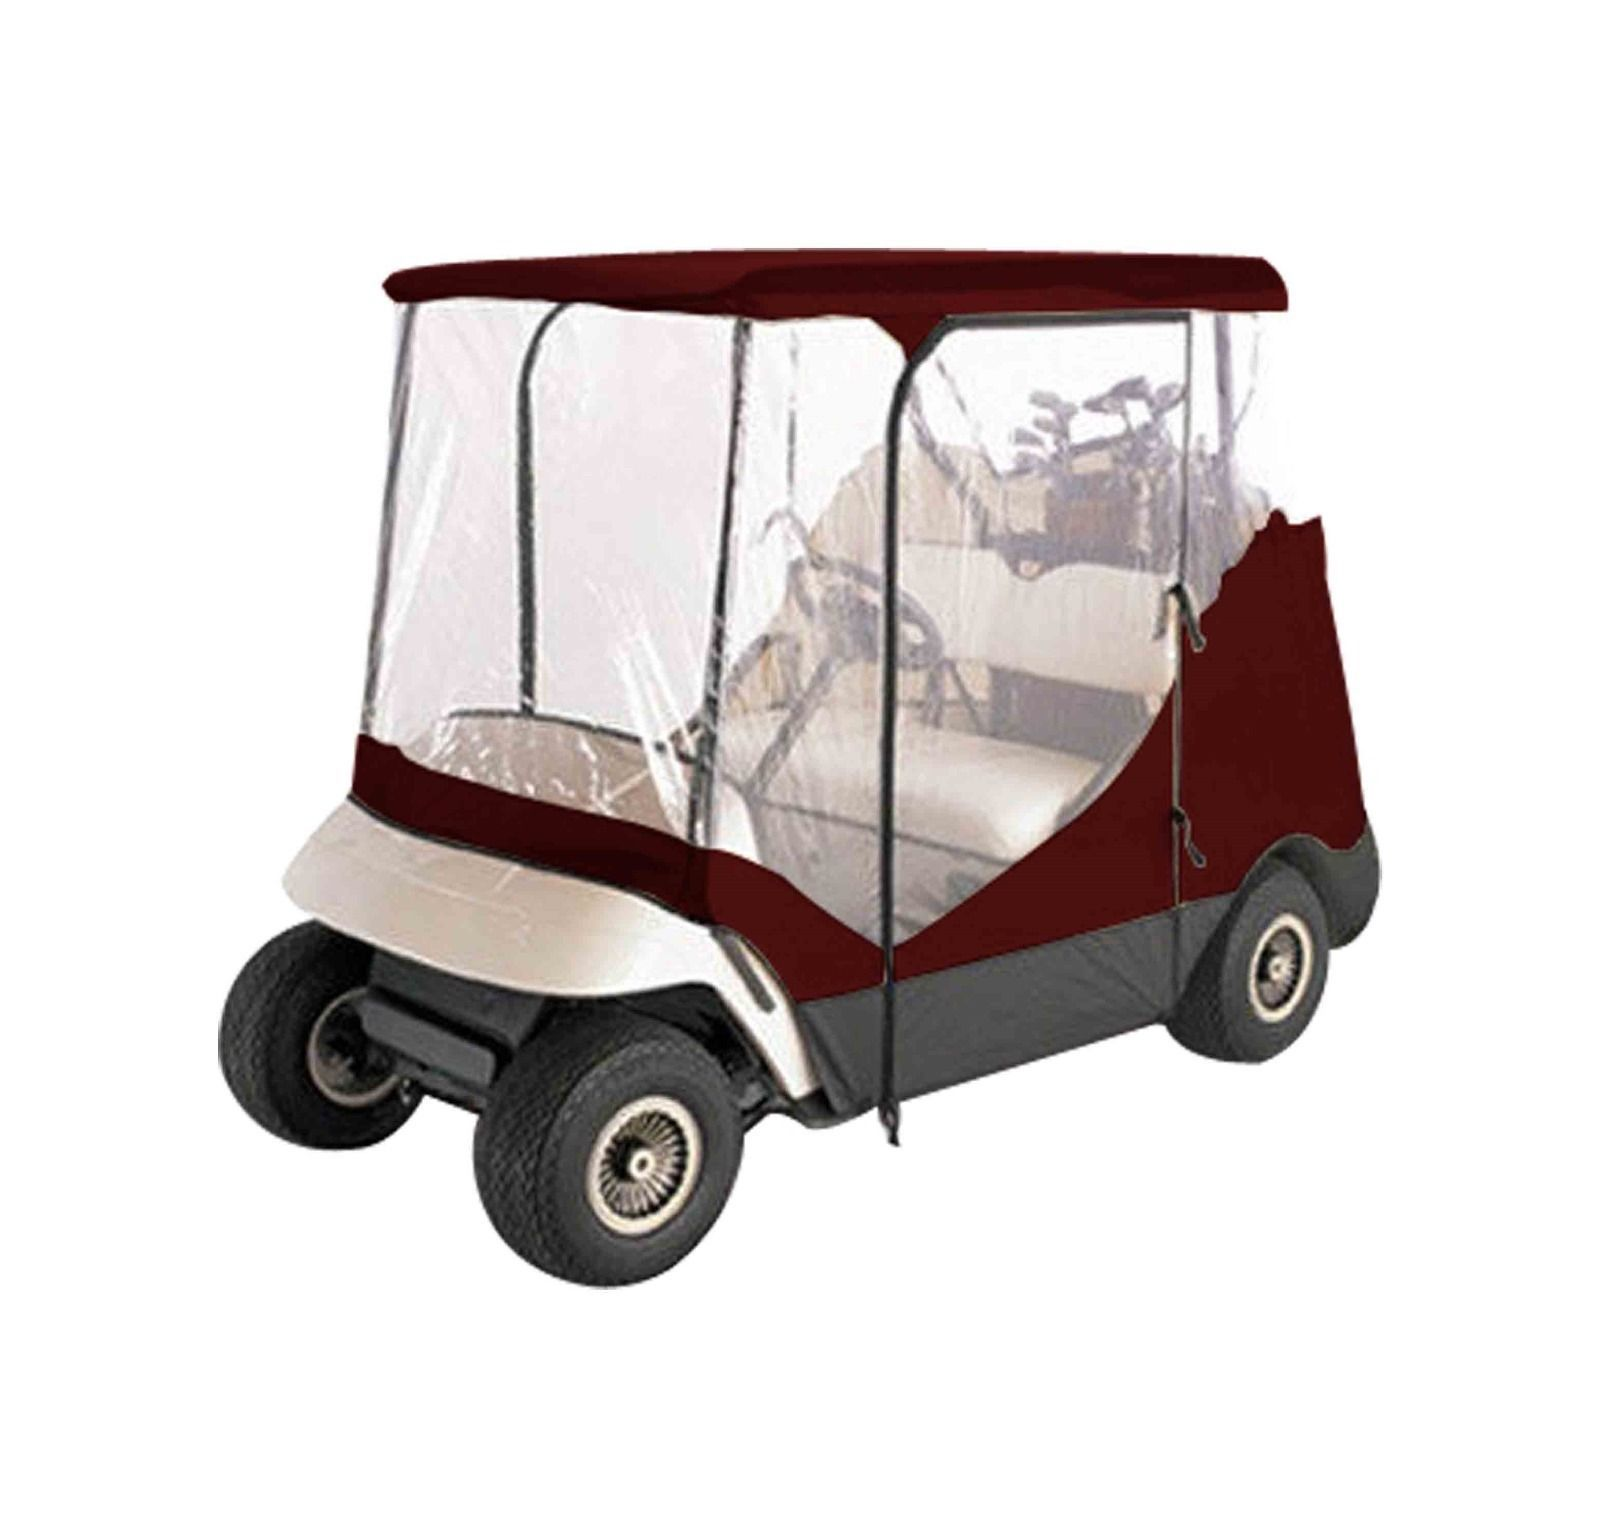 hight resolution of push pull golf carts 75207 burgundy 2 person driving golf cart cover fit